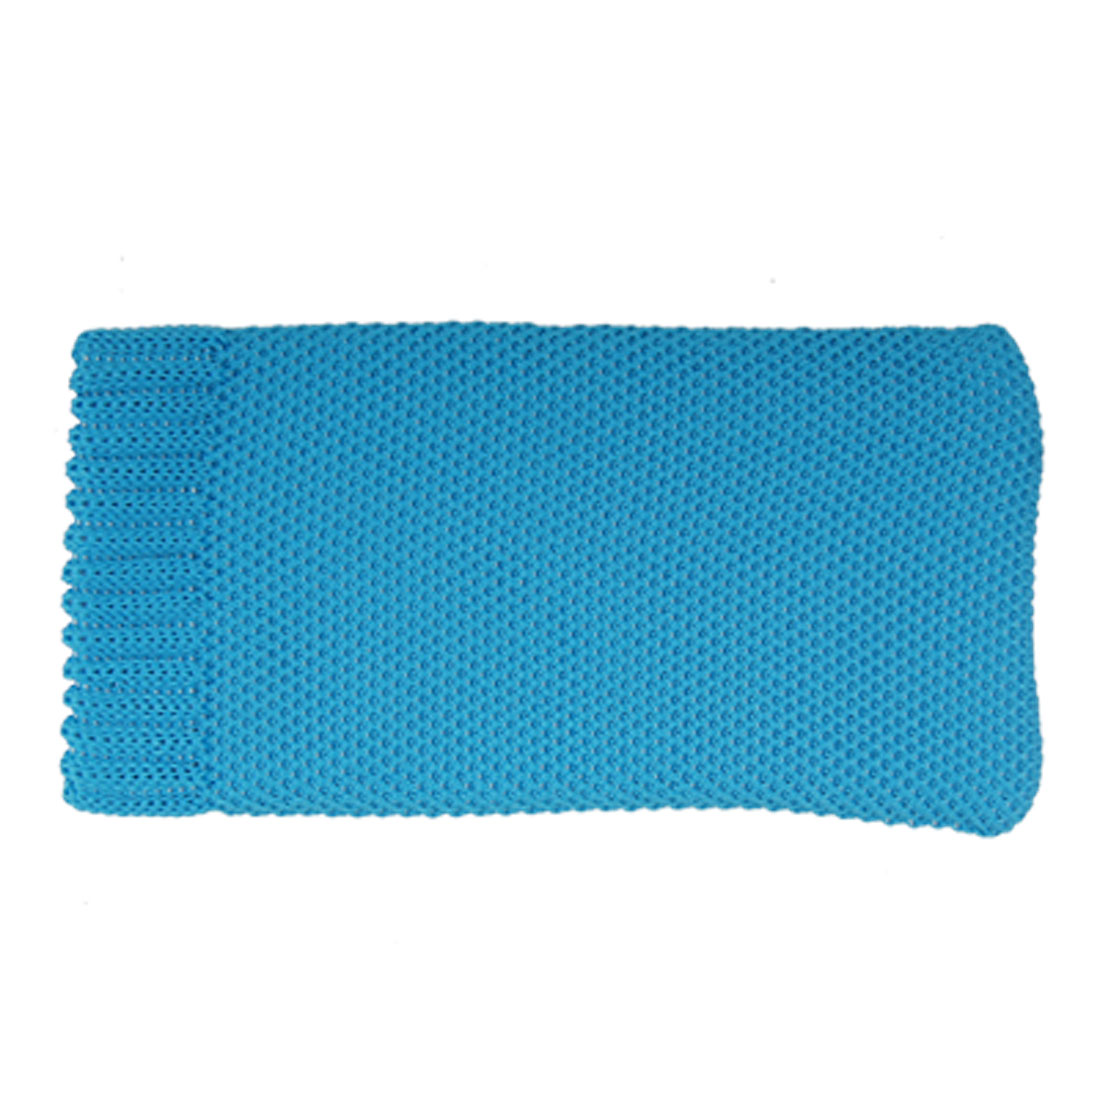 Sky Blue Ribbed Cuffs Knitted Elastic Pouch Bag Case for Cell Phone